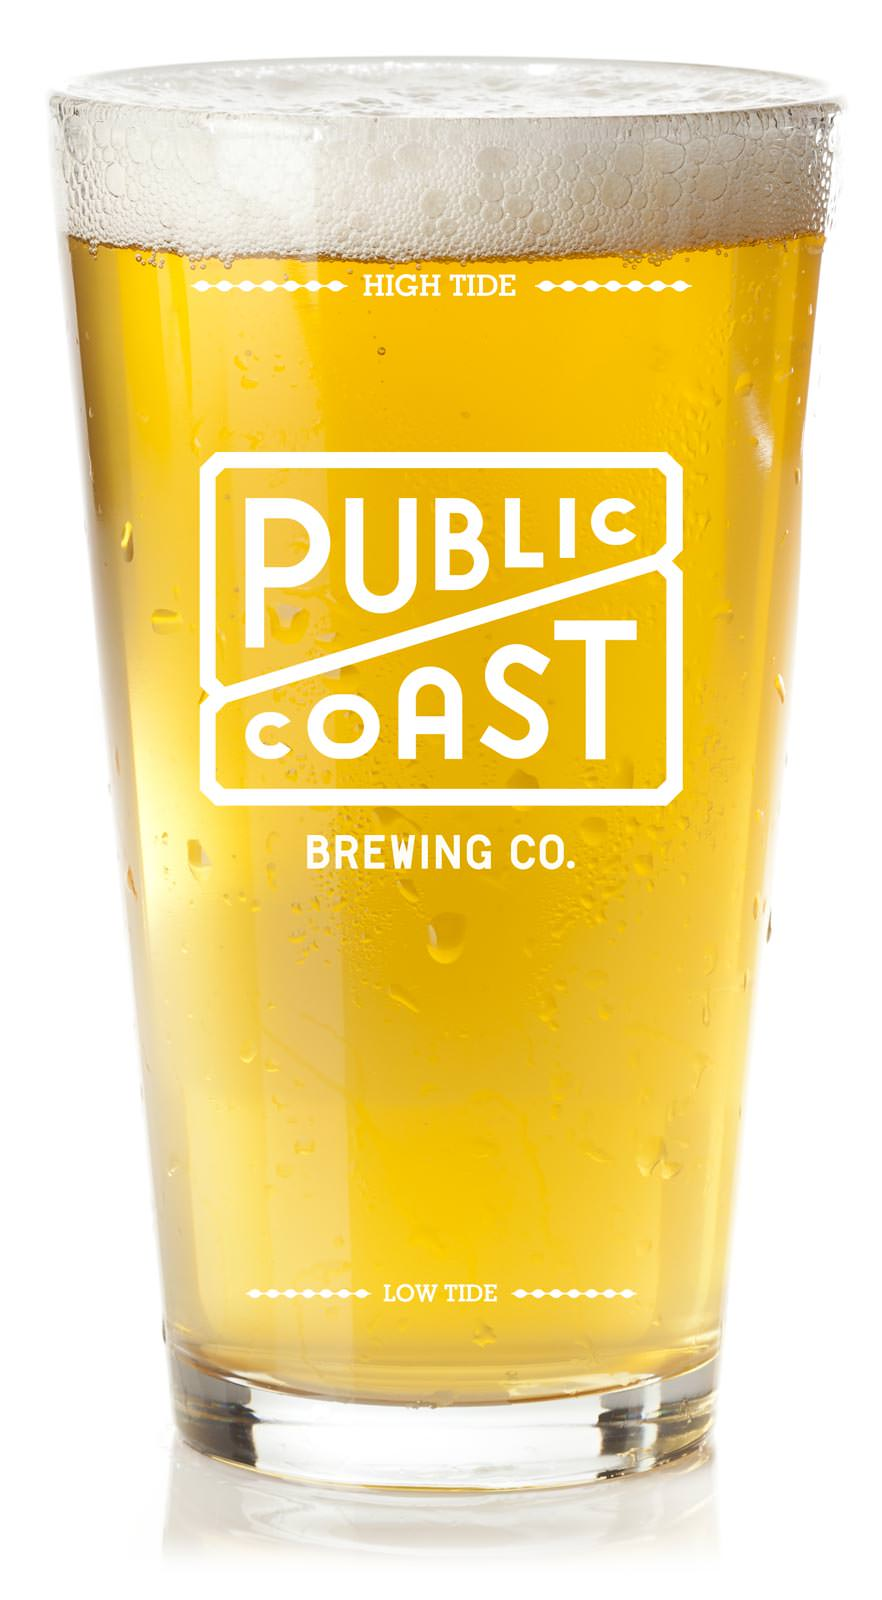 Public Coast Brewing pint of beer, Cannon Beach brewery